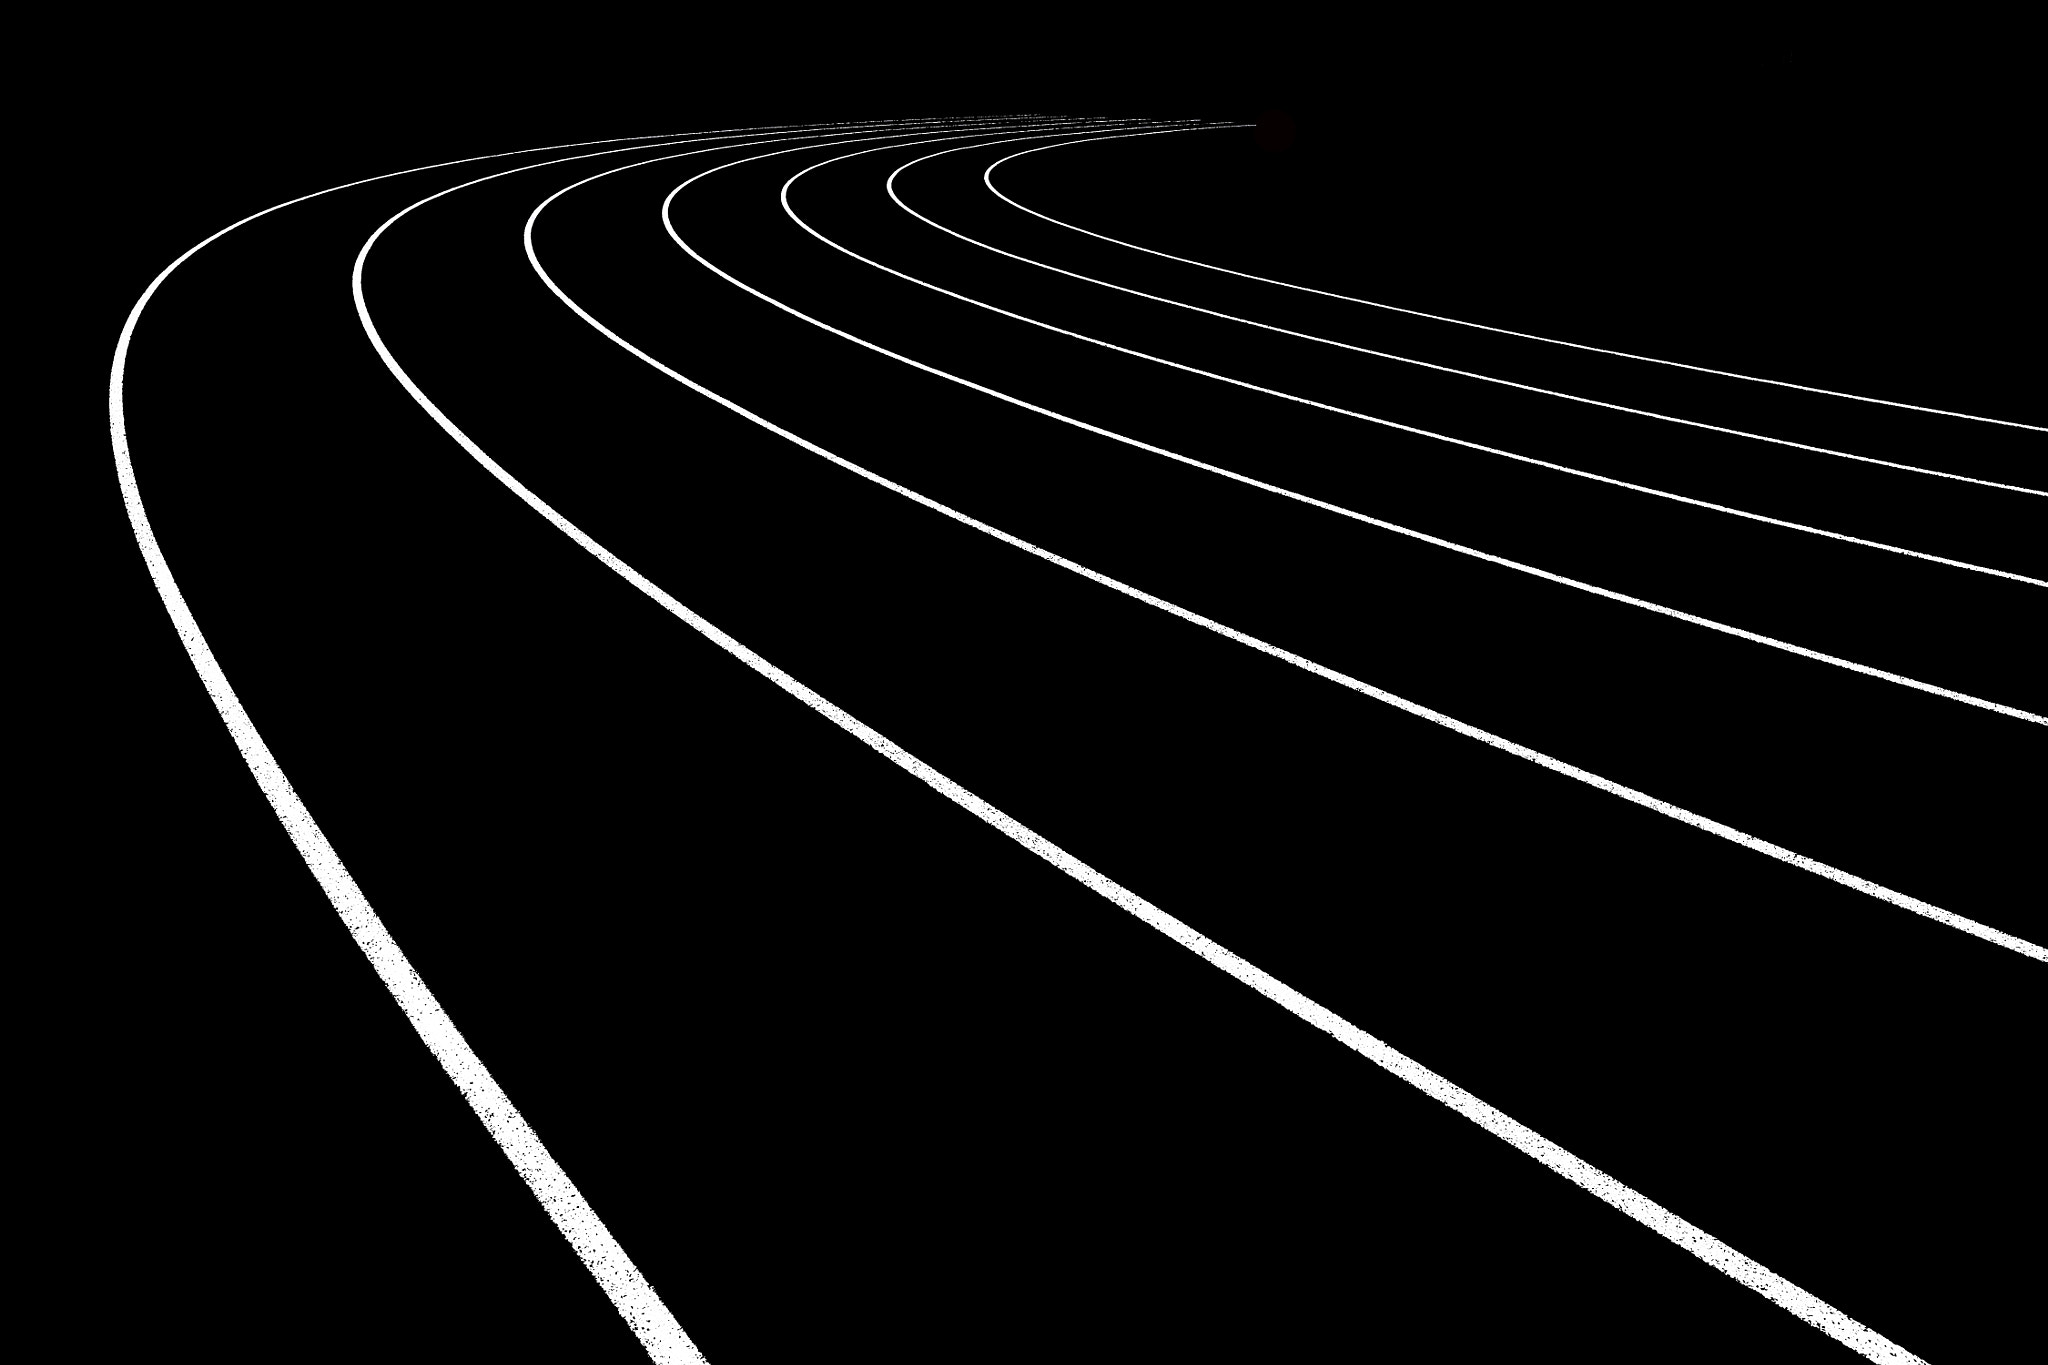 Photograph Following in my tracks by Roland Shainidze on 500px